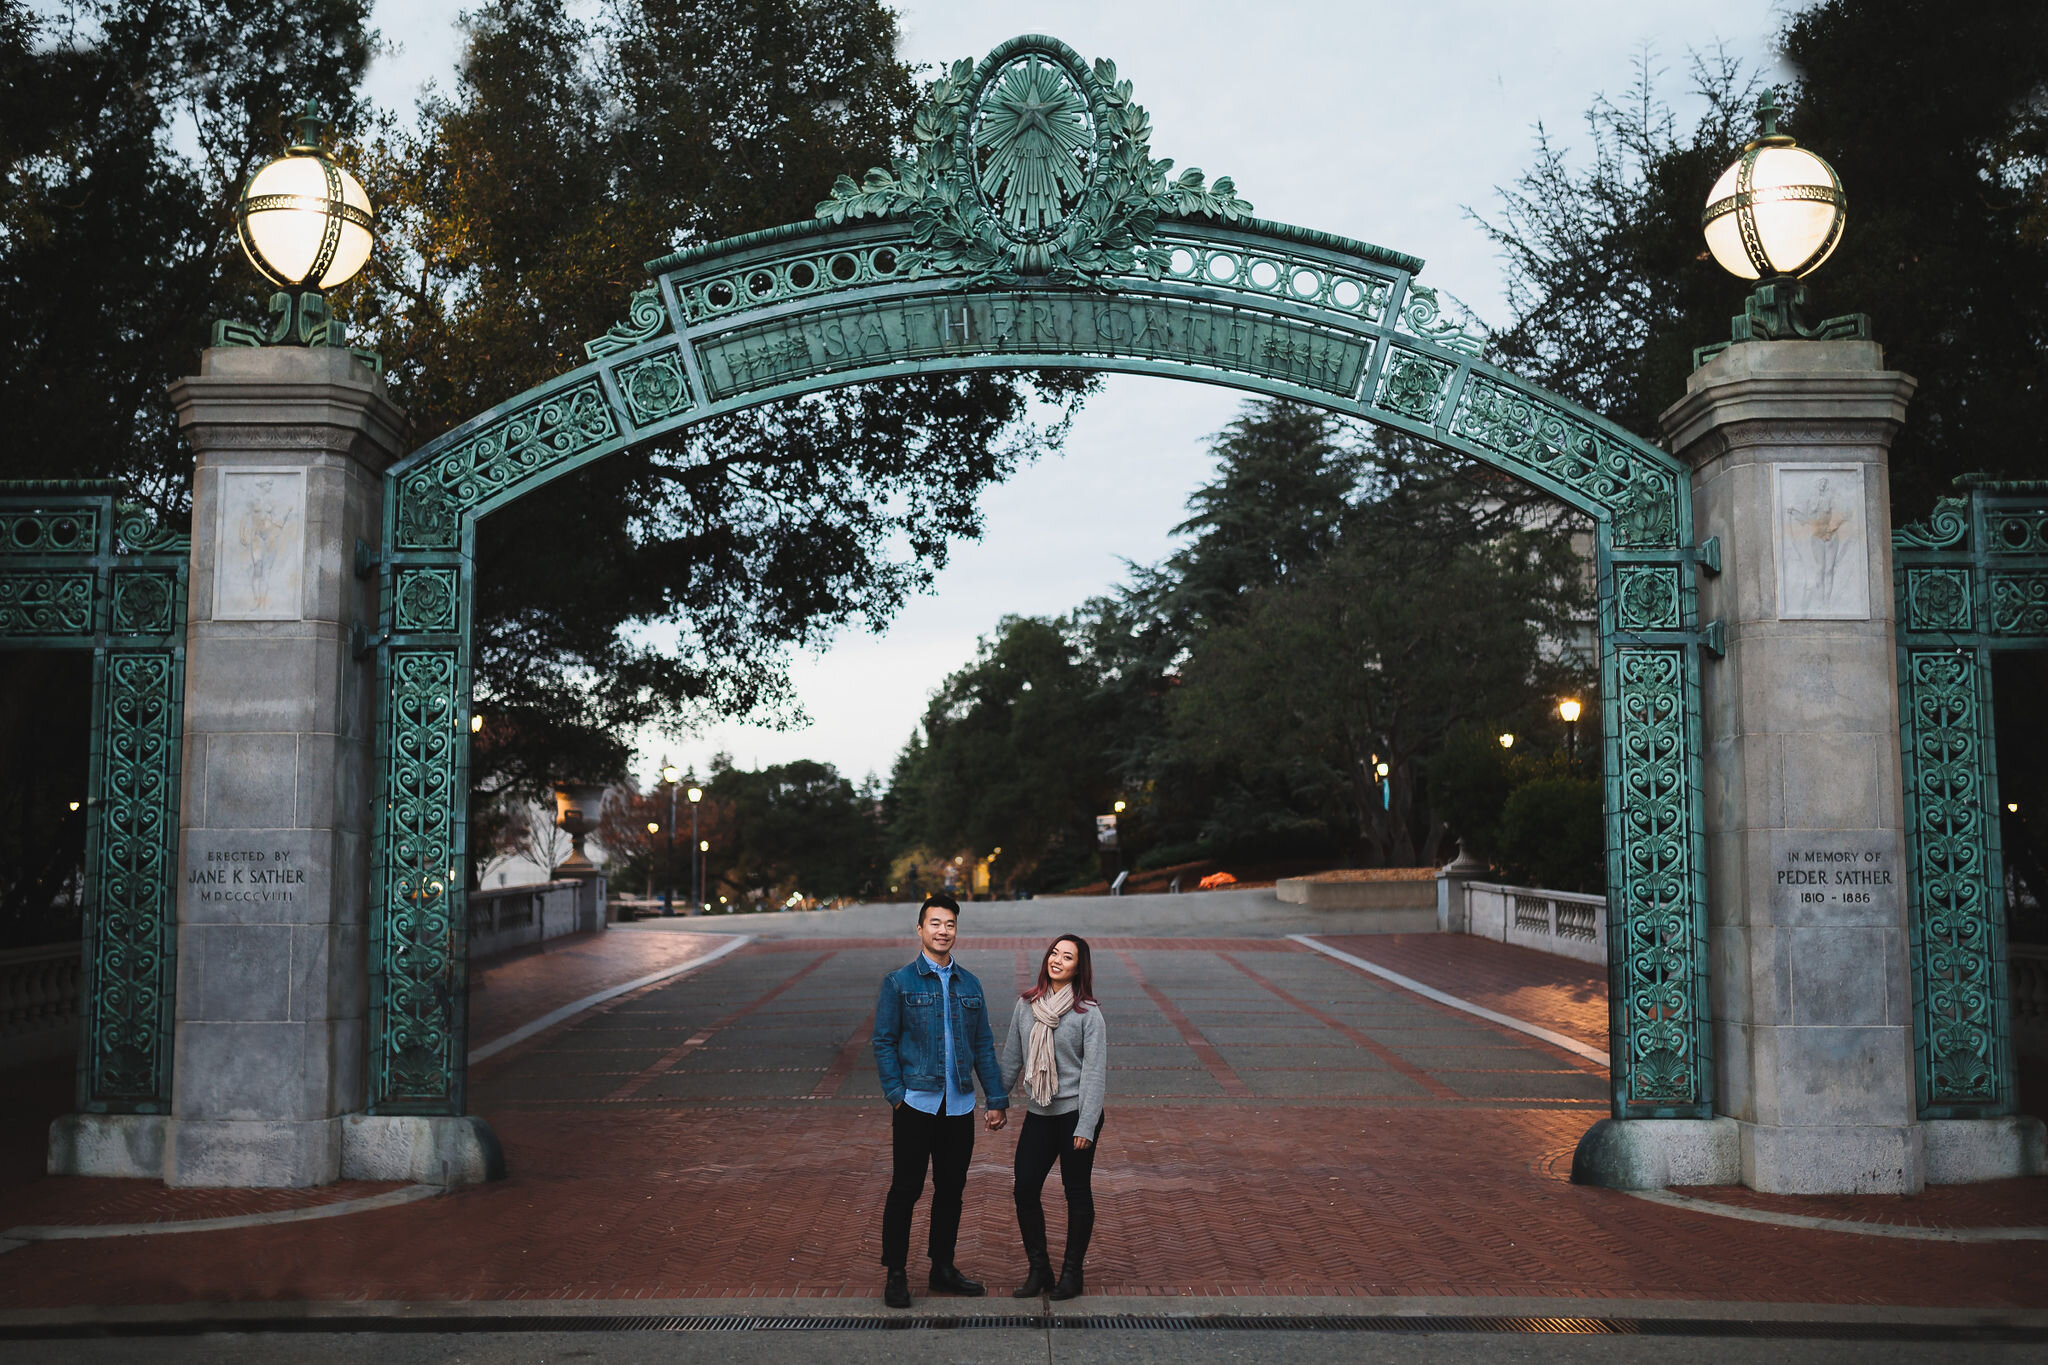 UC Berkeley Engagement Session // Bay Area Wedding Photographer  Photo by Trung Hoang Photography |www.trunghoangphotography.com | San Francisco Bay Area Wedding Photographer